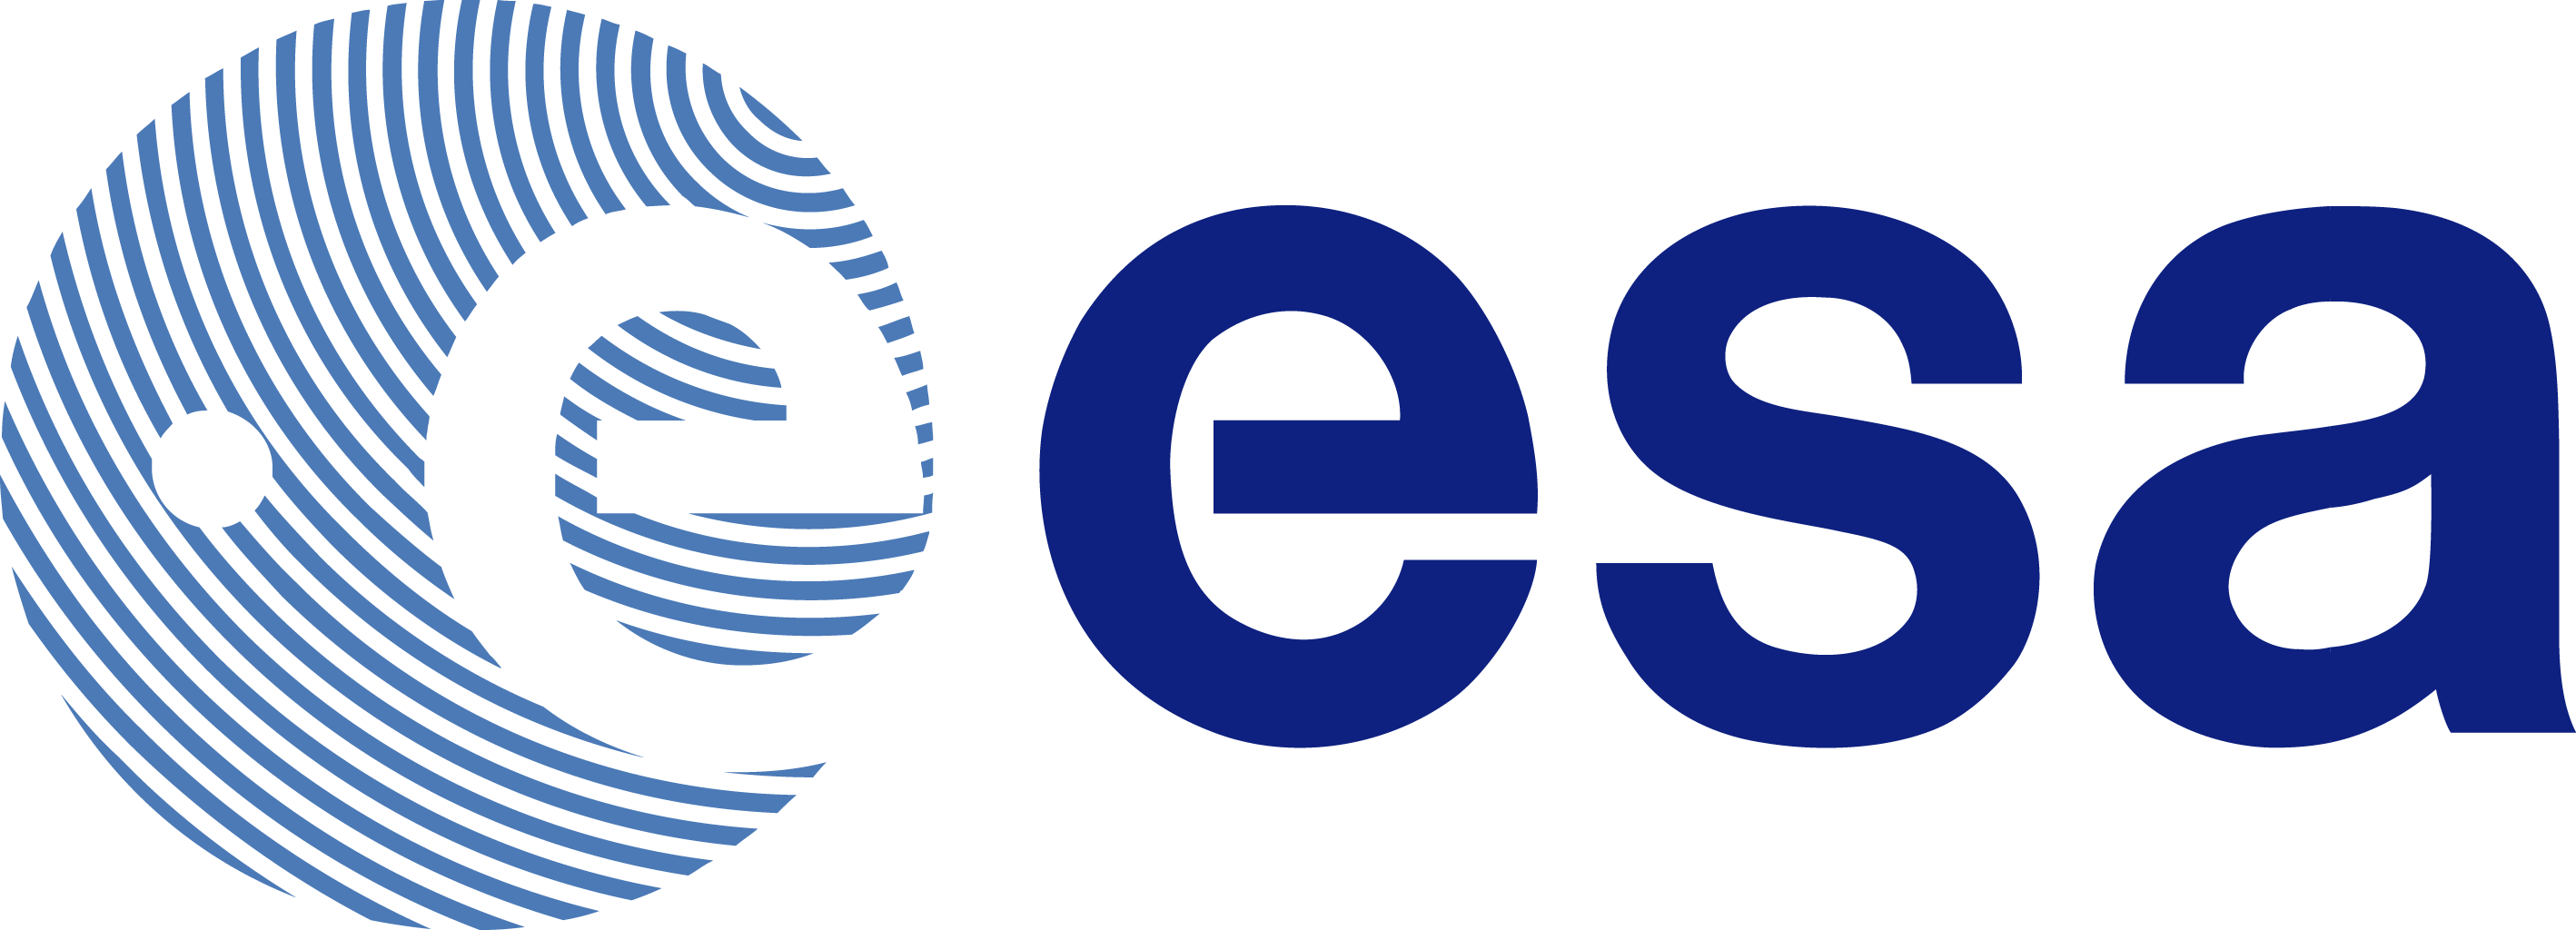 ESA   European Space Agency Logo png